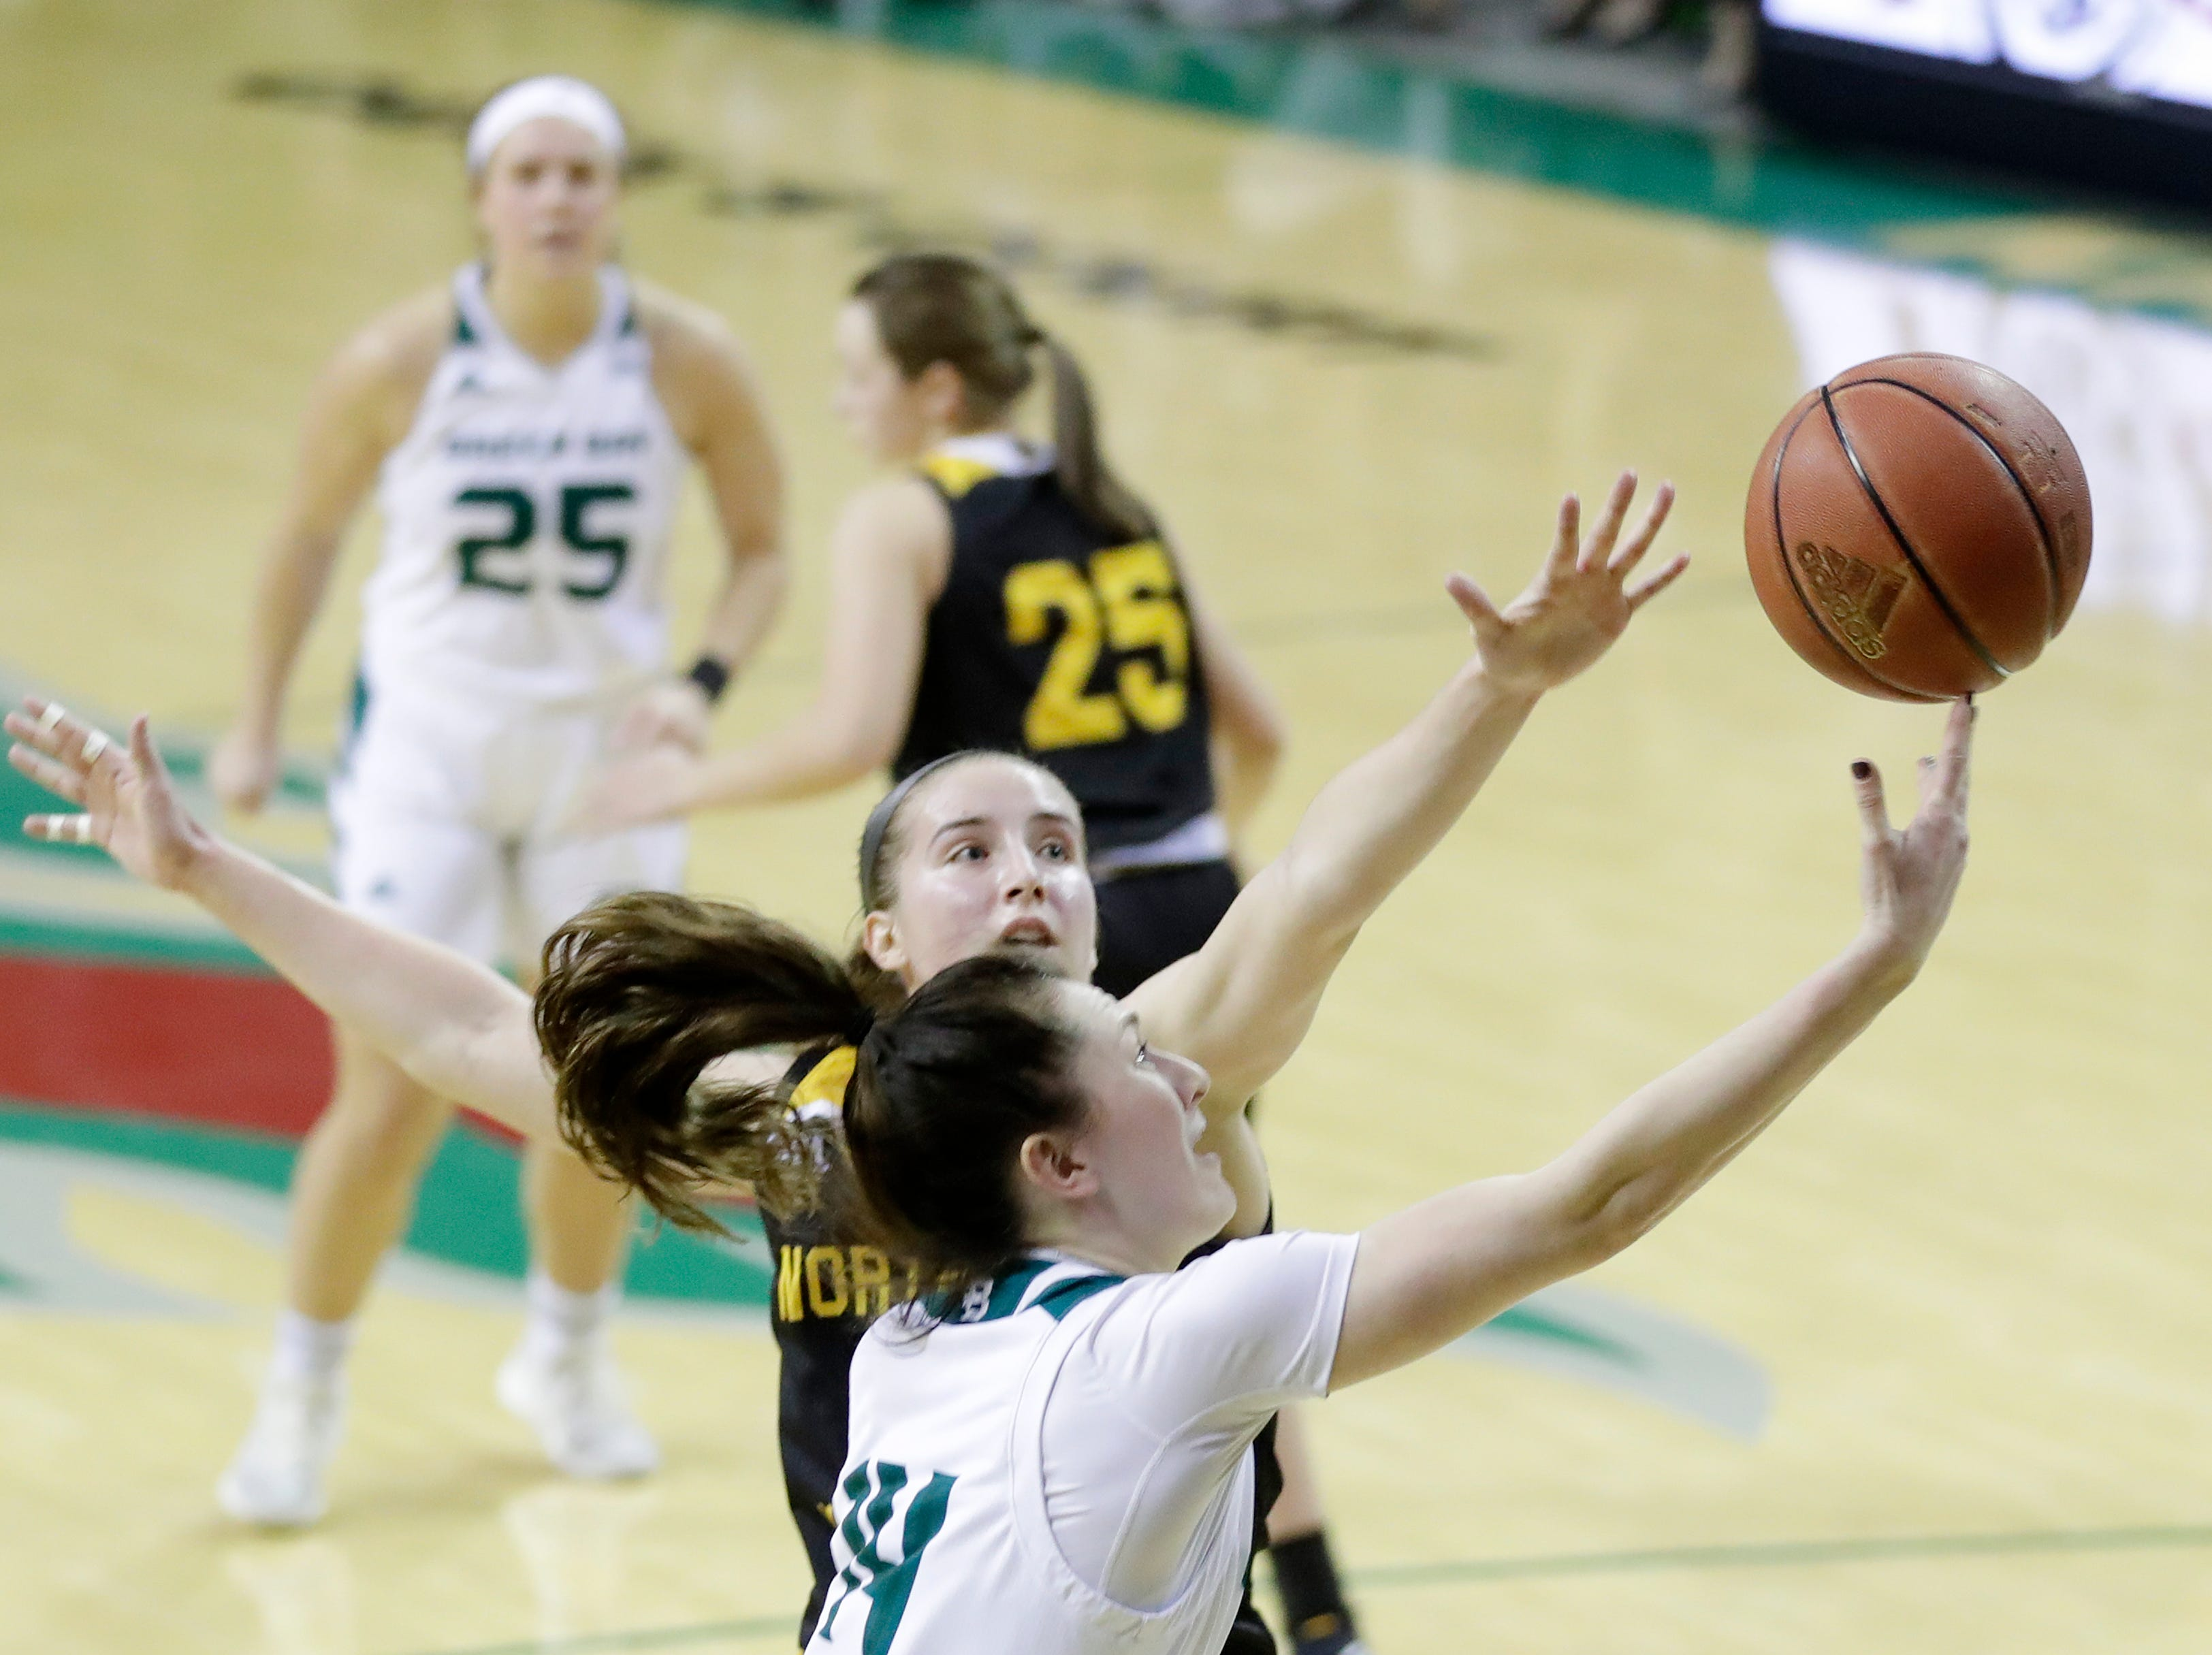 Green Bay Phoenix guard Meghan Pingel (14) shoots against Northern Kentucky Norse forward Kailey Coffey (23) in a Horizon League women's basketball game at the Kress Center on Thursday, February 7, 2019 in Green Bay, Wis.